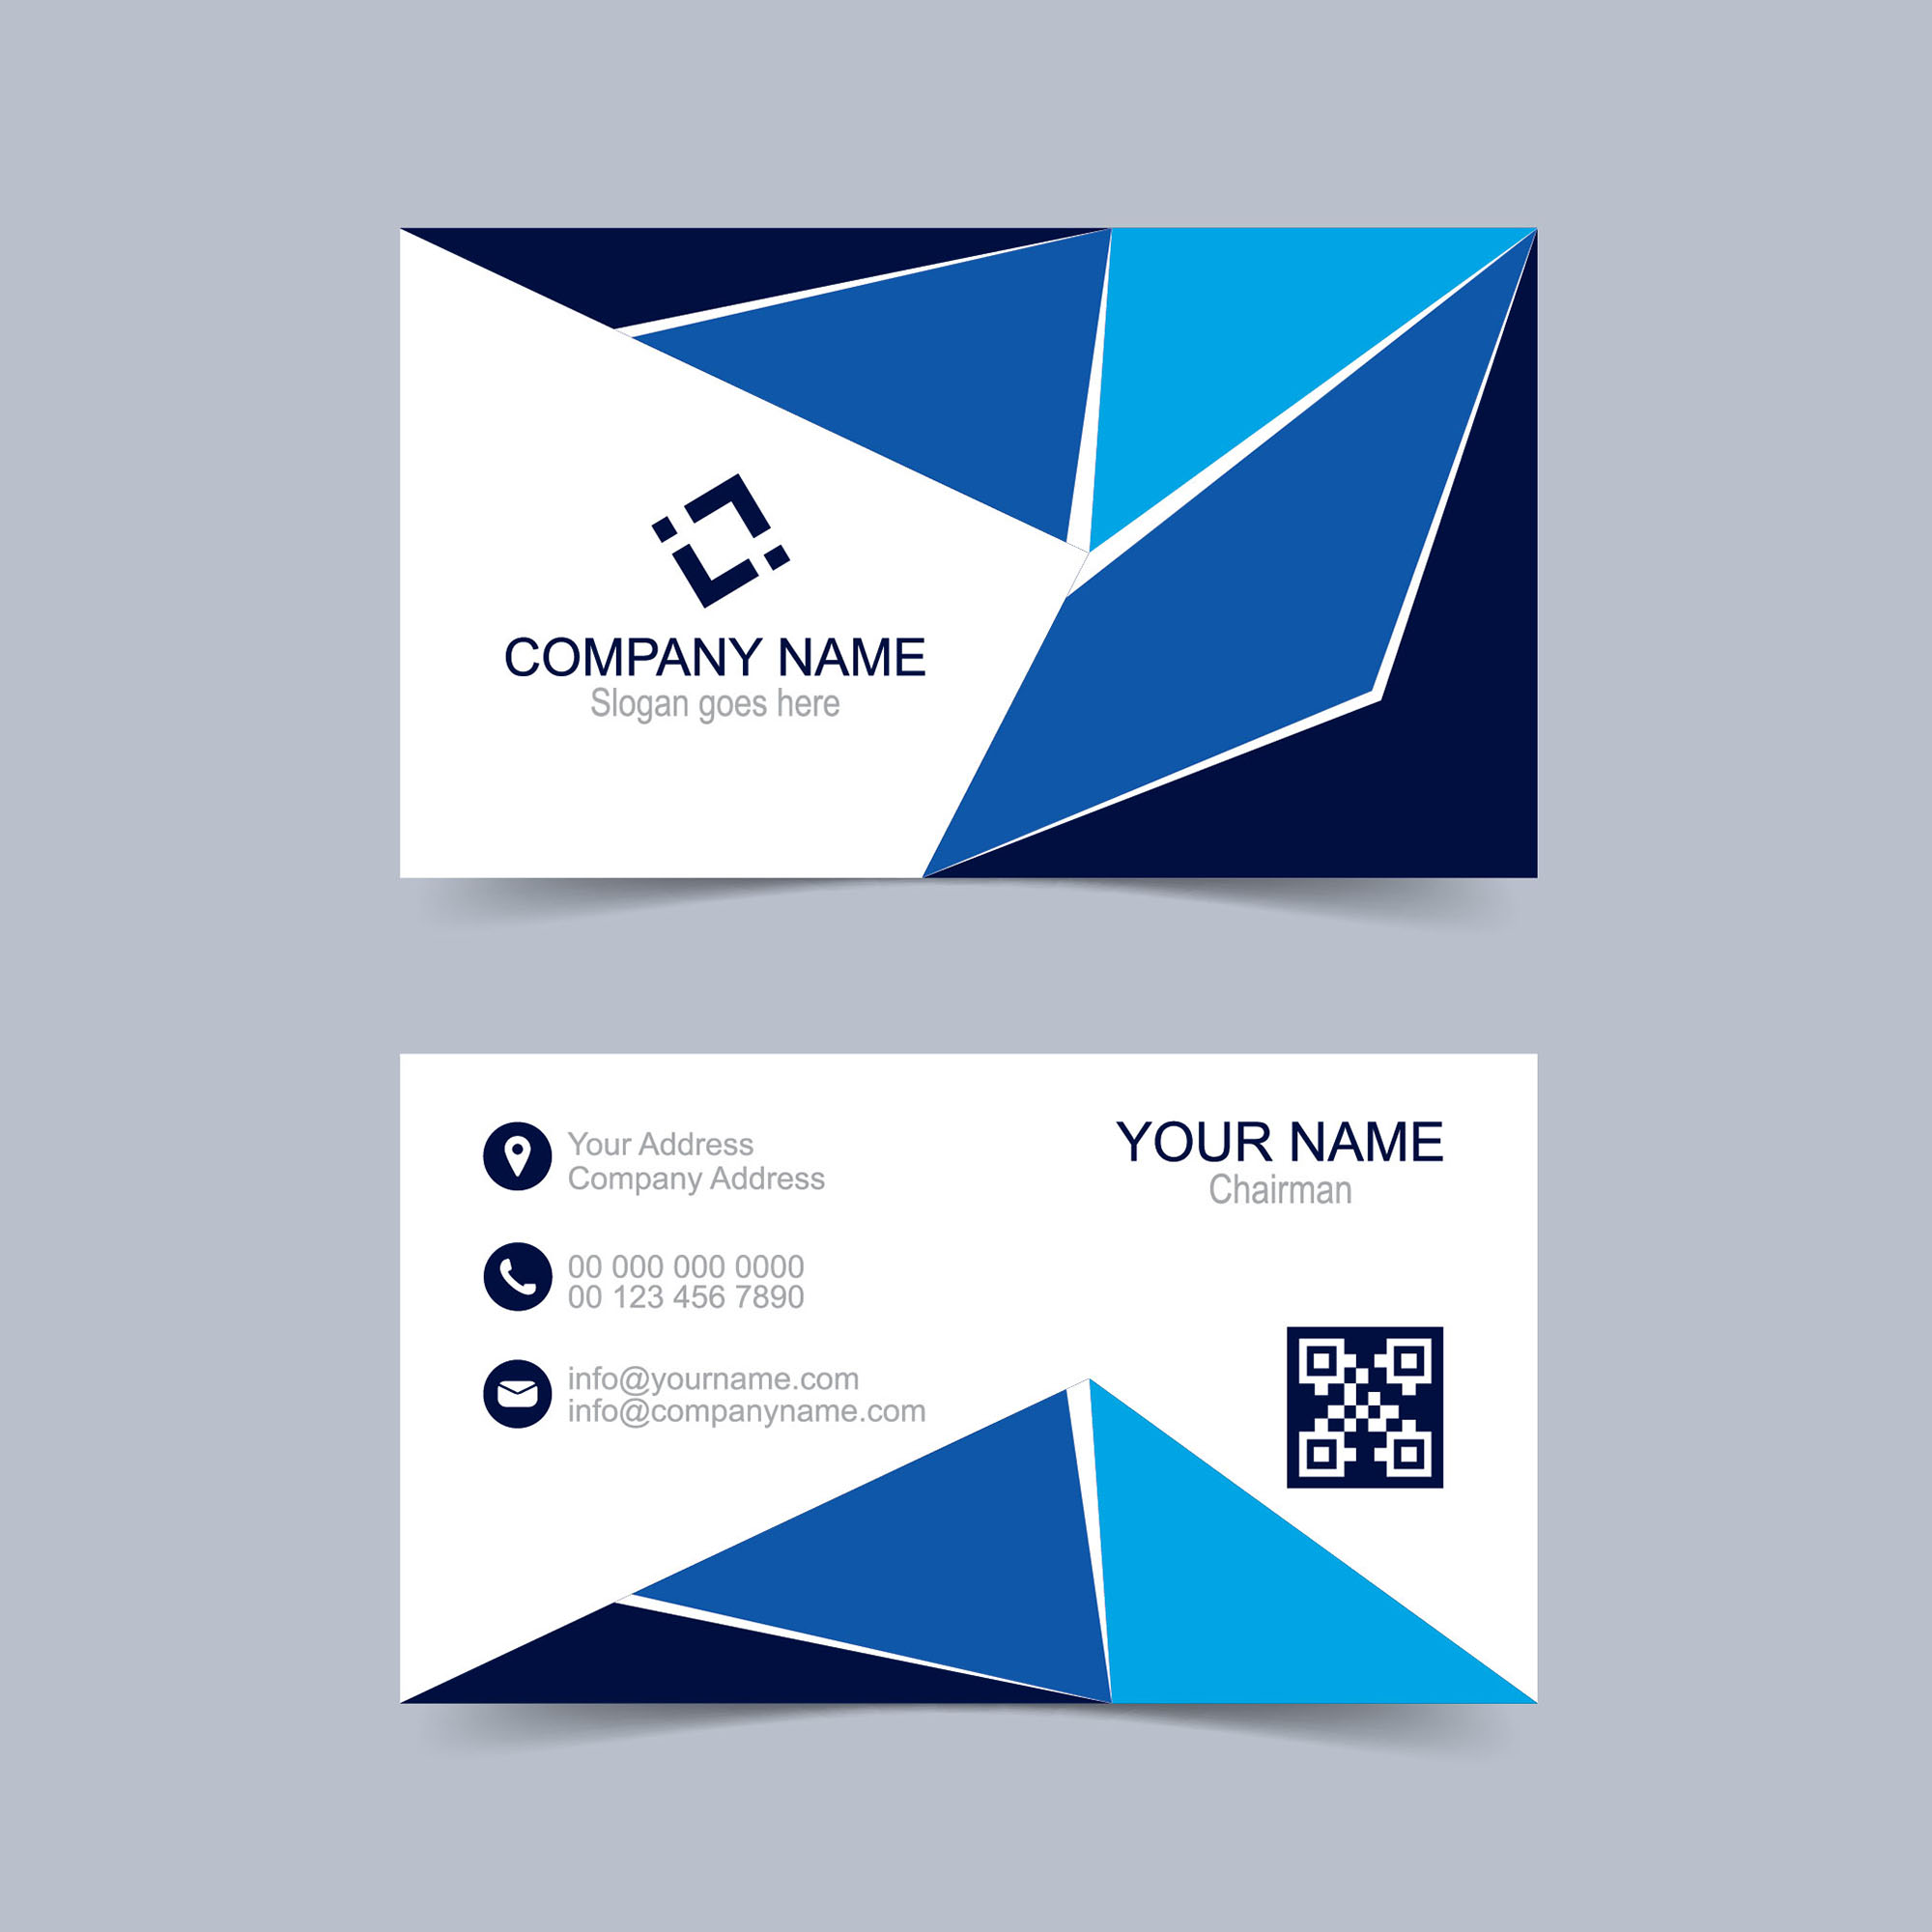 Creative business card design free download wisxi business card business cards business card design business card template design templates flashek Images